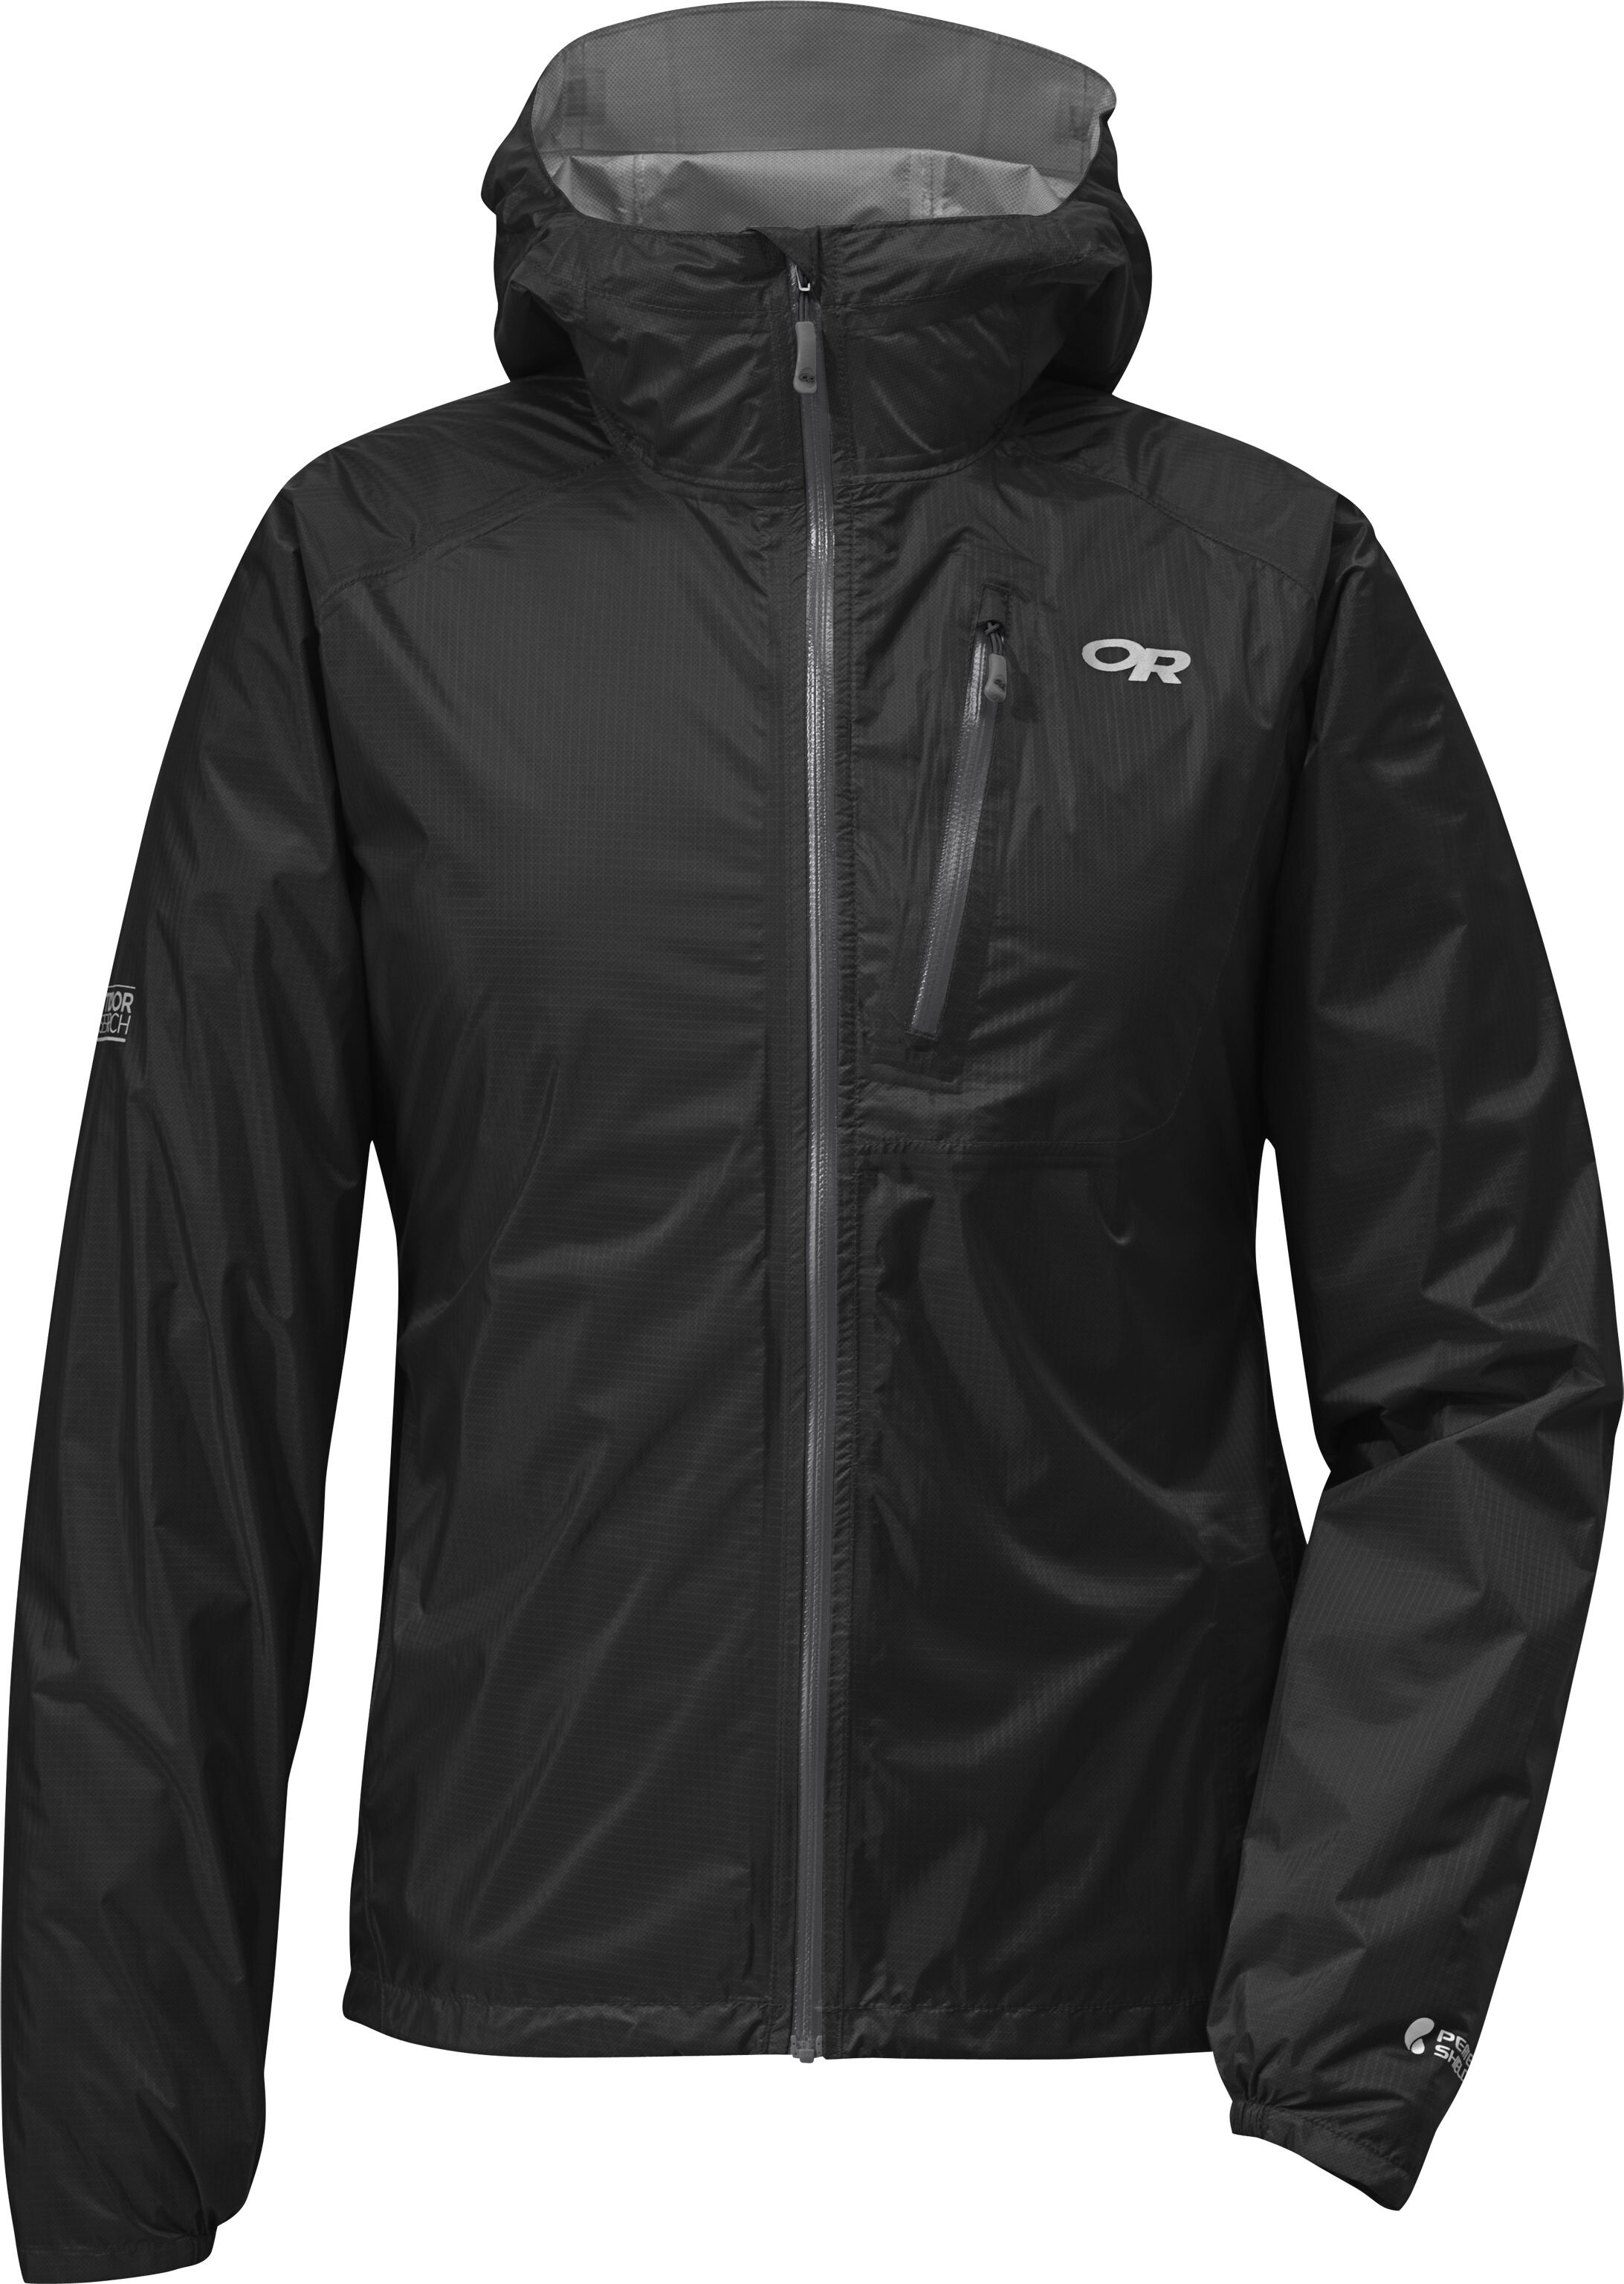 low priced 3f5c5 0f366 Outdoor Research W's Helium II Jacket Black/Charcoal